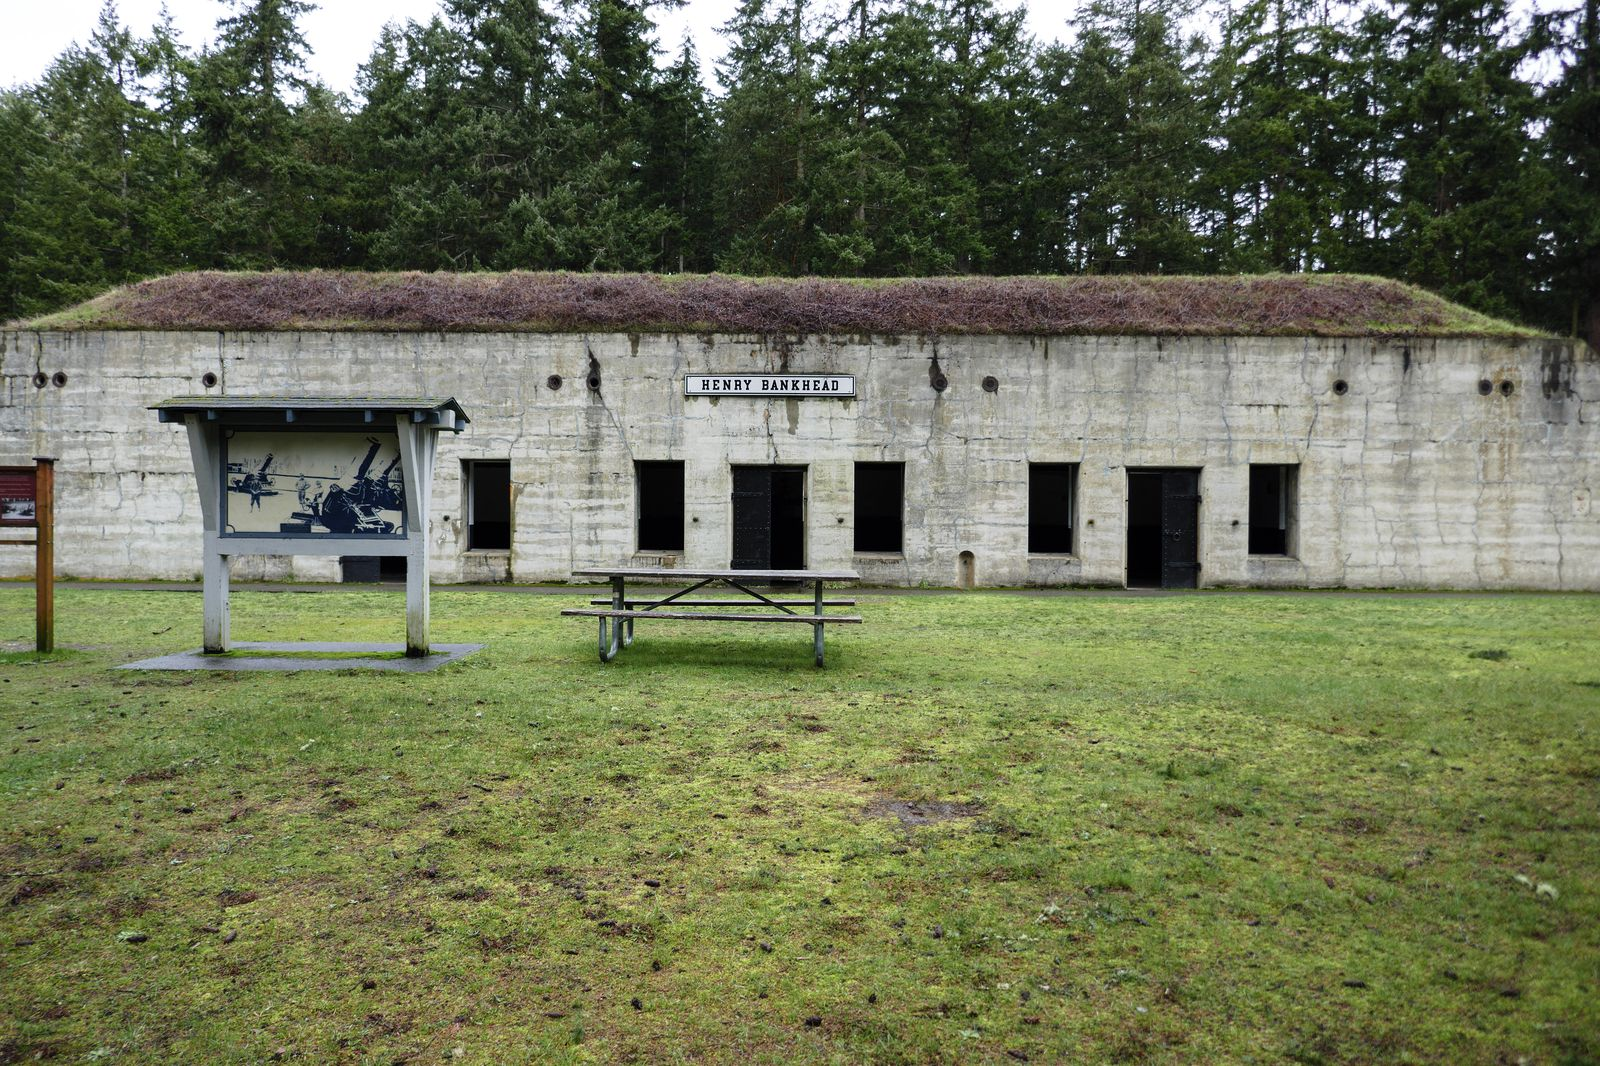 How Henry Bankhead emplacement looks today